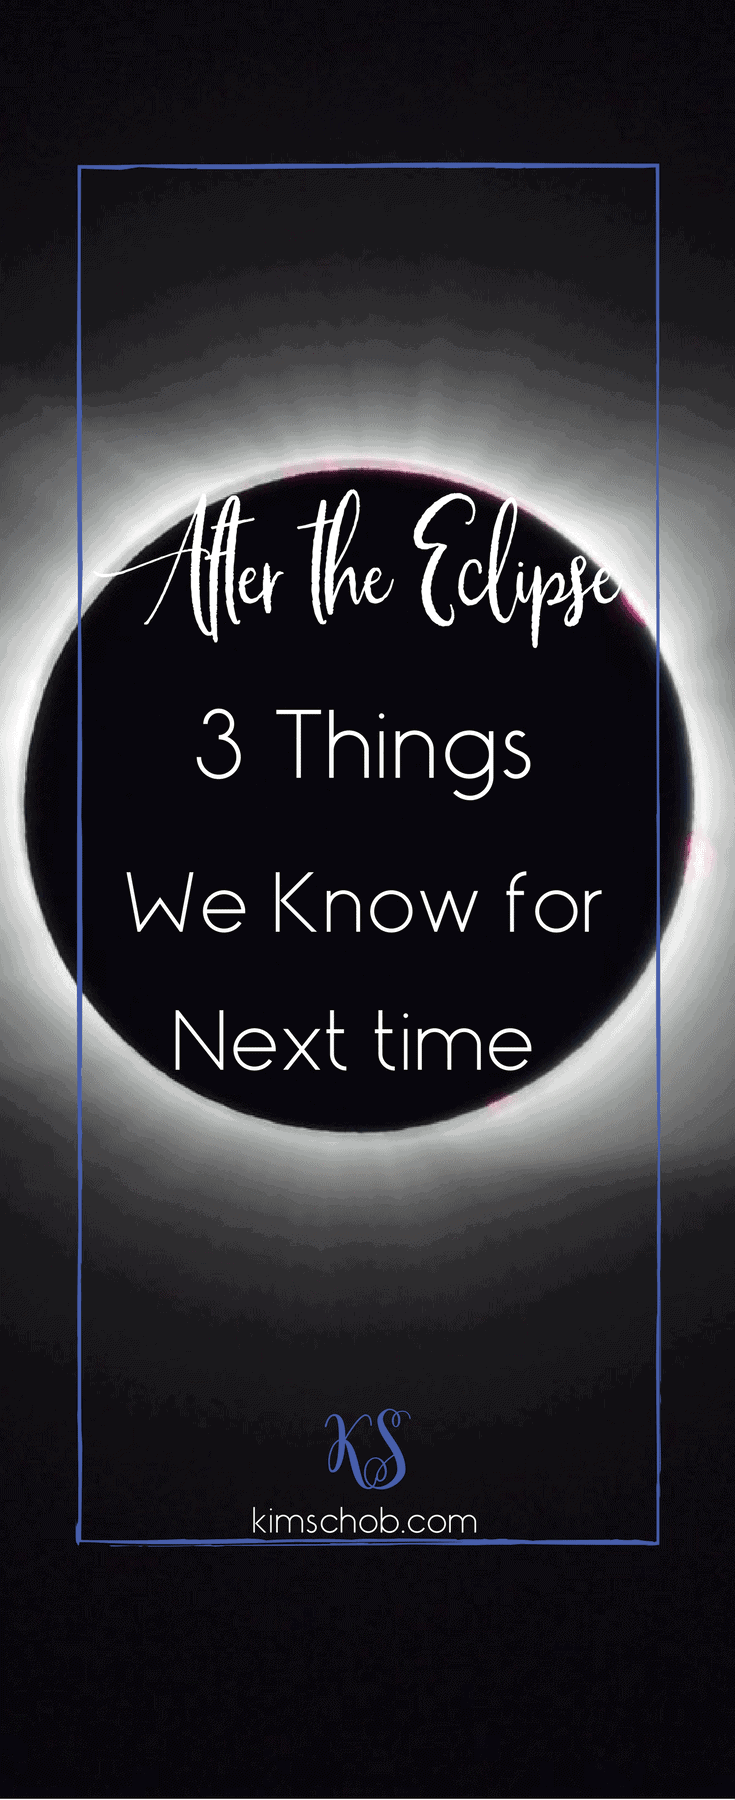 """After The Eclipse 3 Things, We Know for Next Time. It's more fun when it's a party, There is no need to panic & preparing depends on the """"Path of Totality.""""   kimschob.com  #2024 #kimschob #eclipse"""